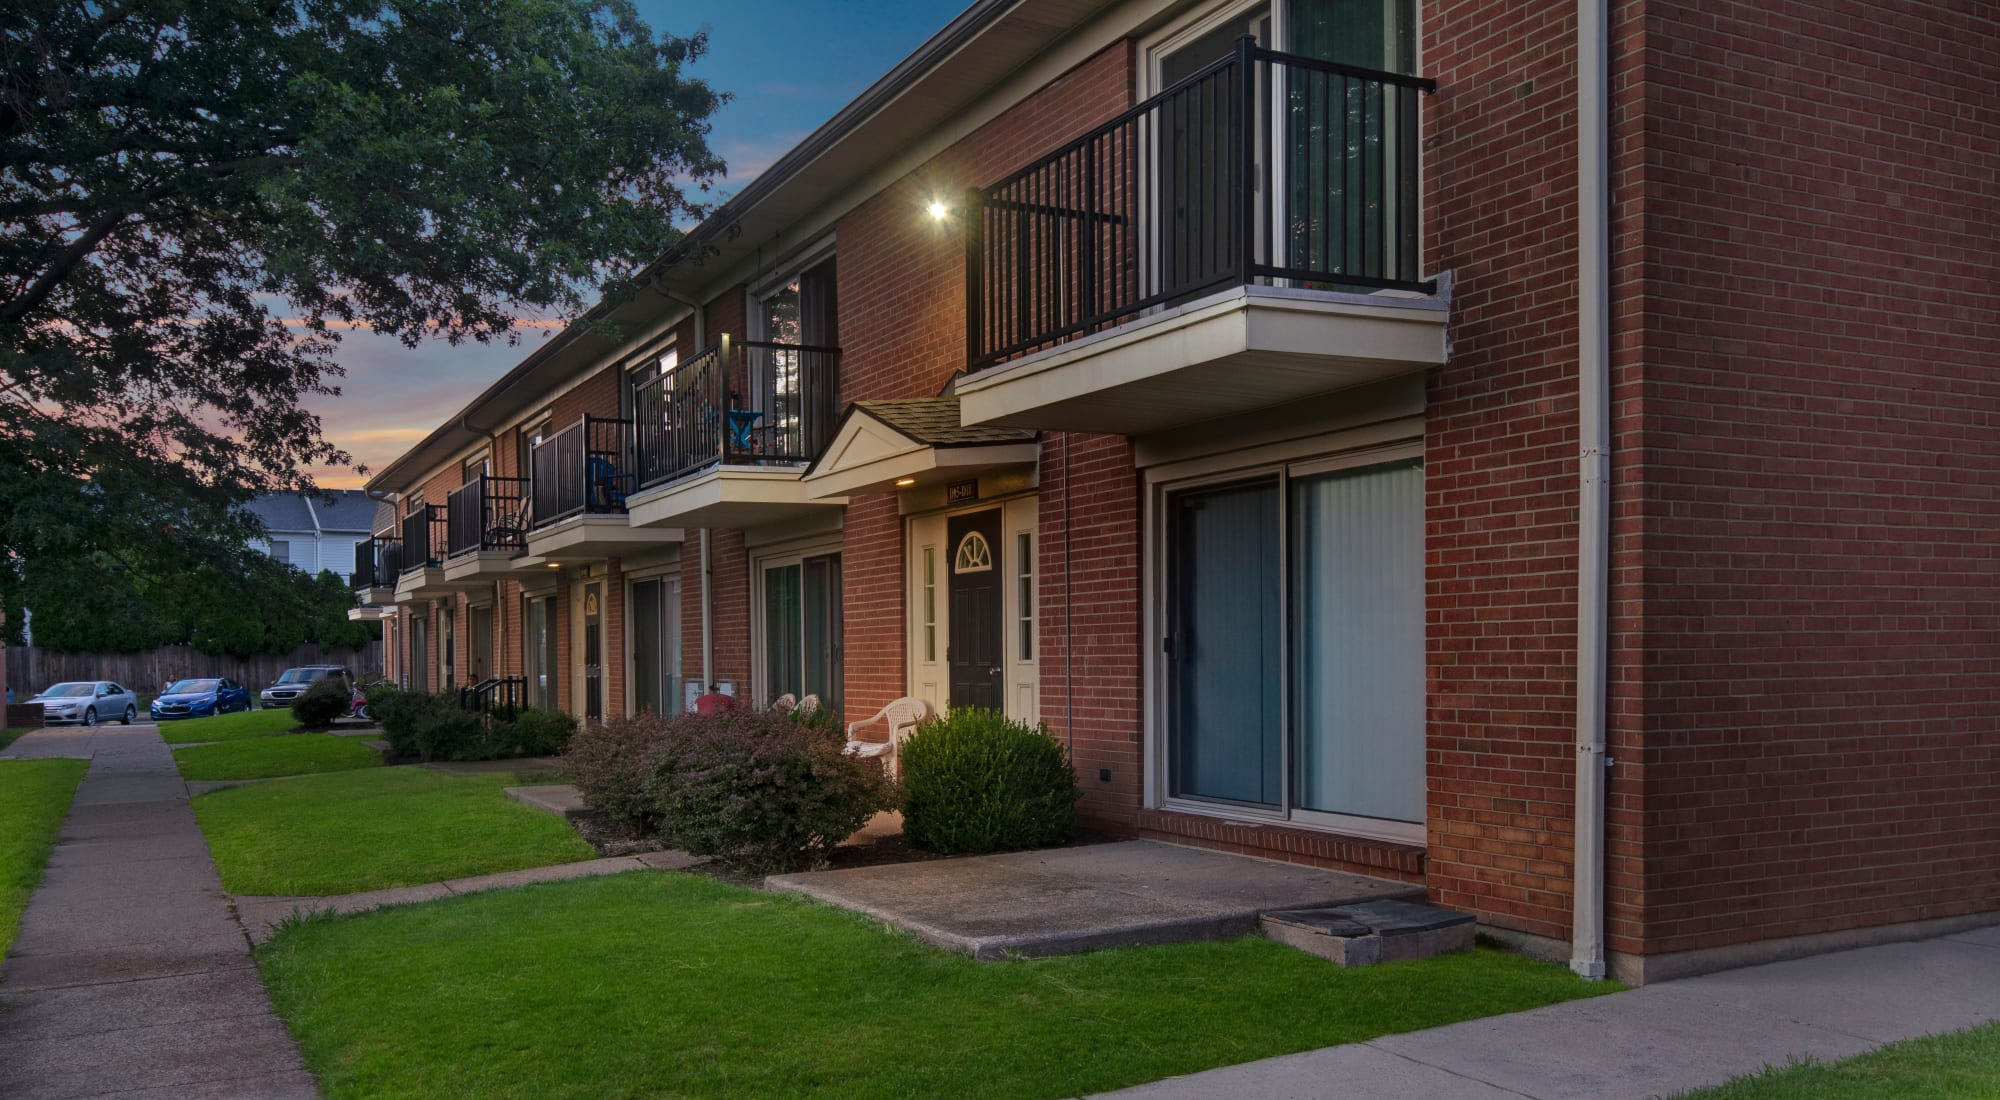 Schedule your tour of New Orleans Park Apartments in Secane, Pennsylvania